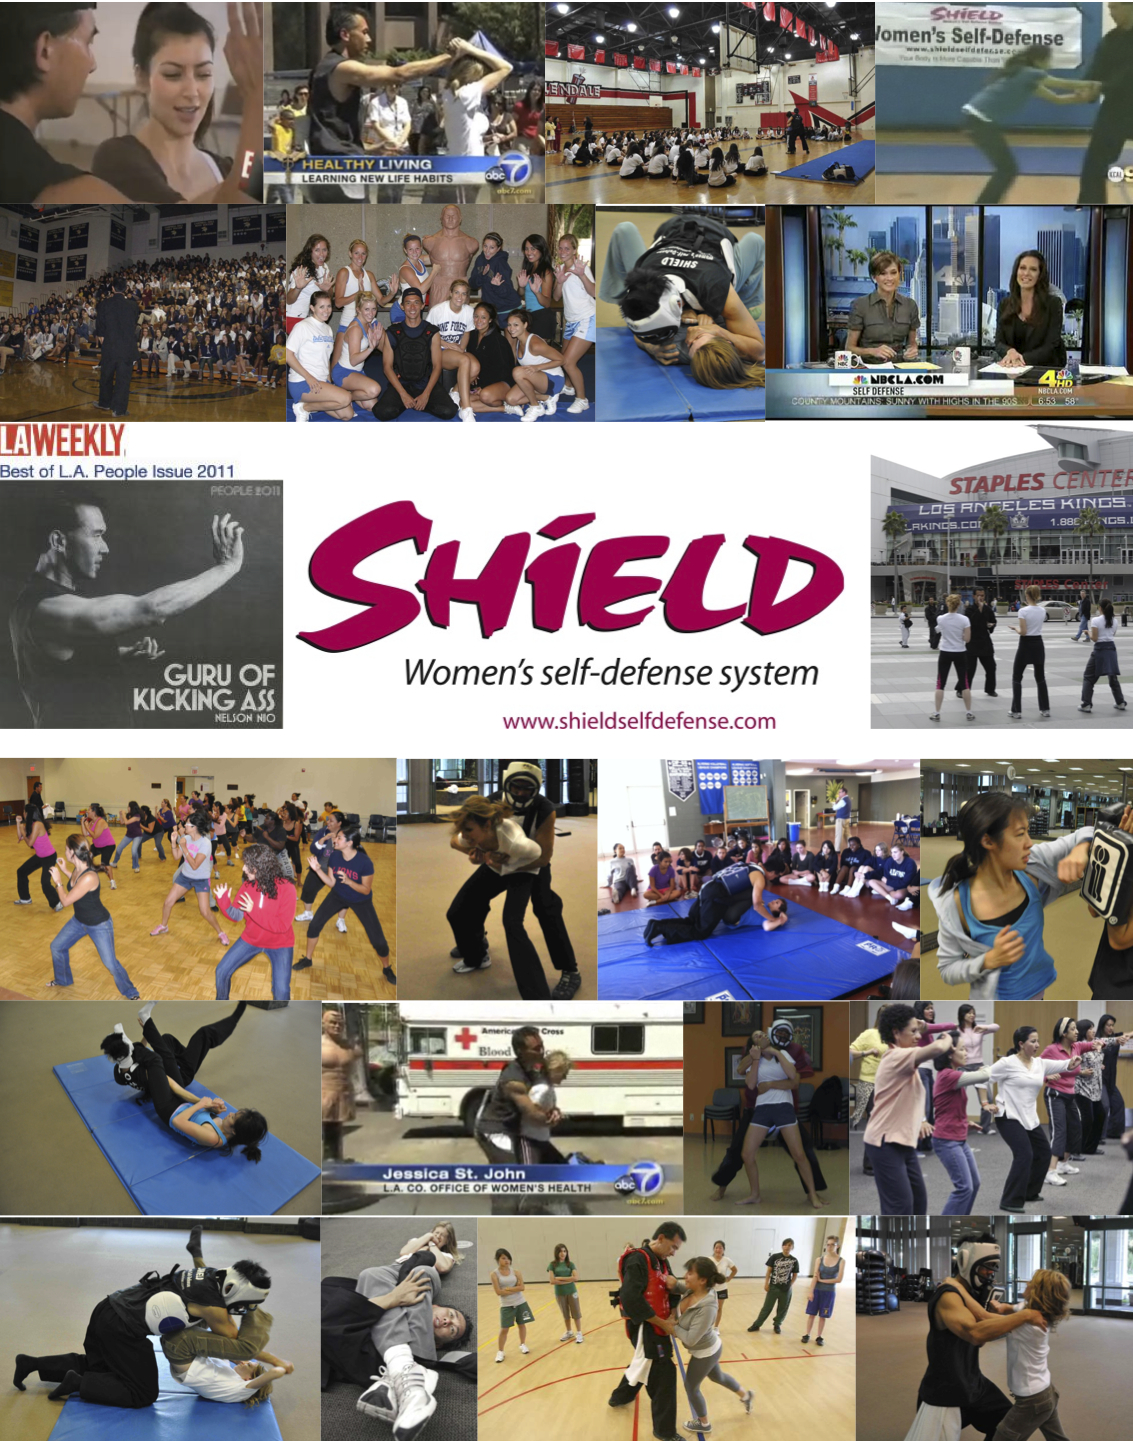 self defense classes for women and girls